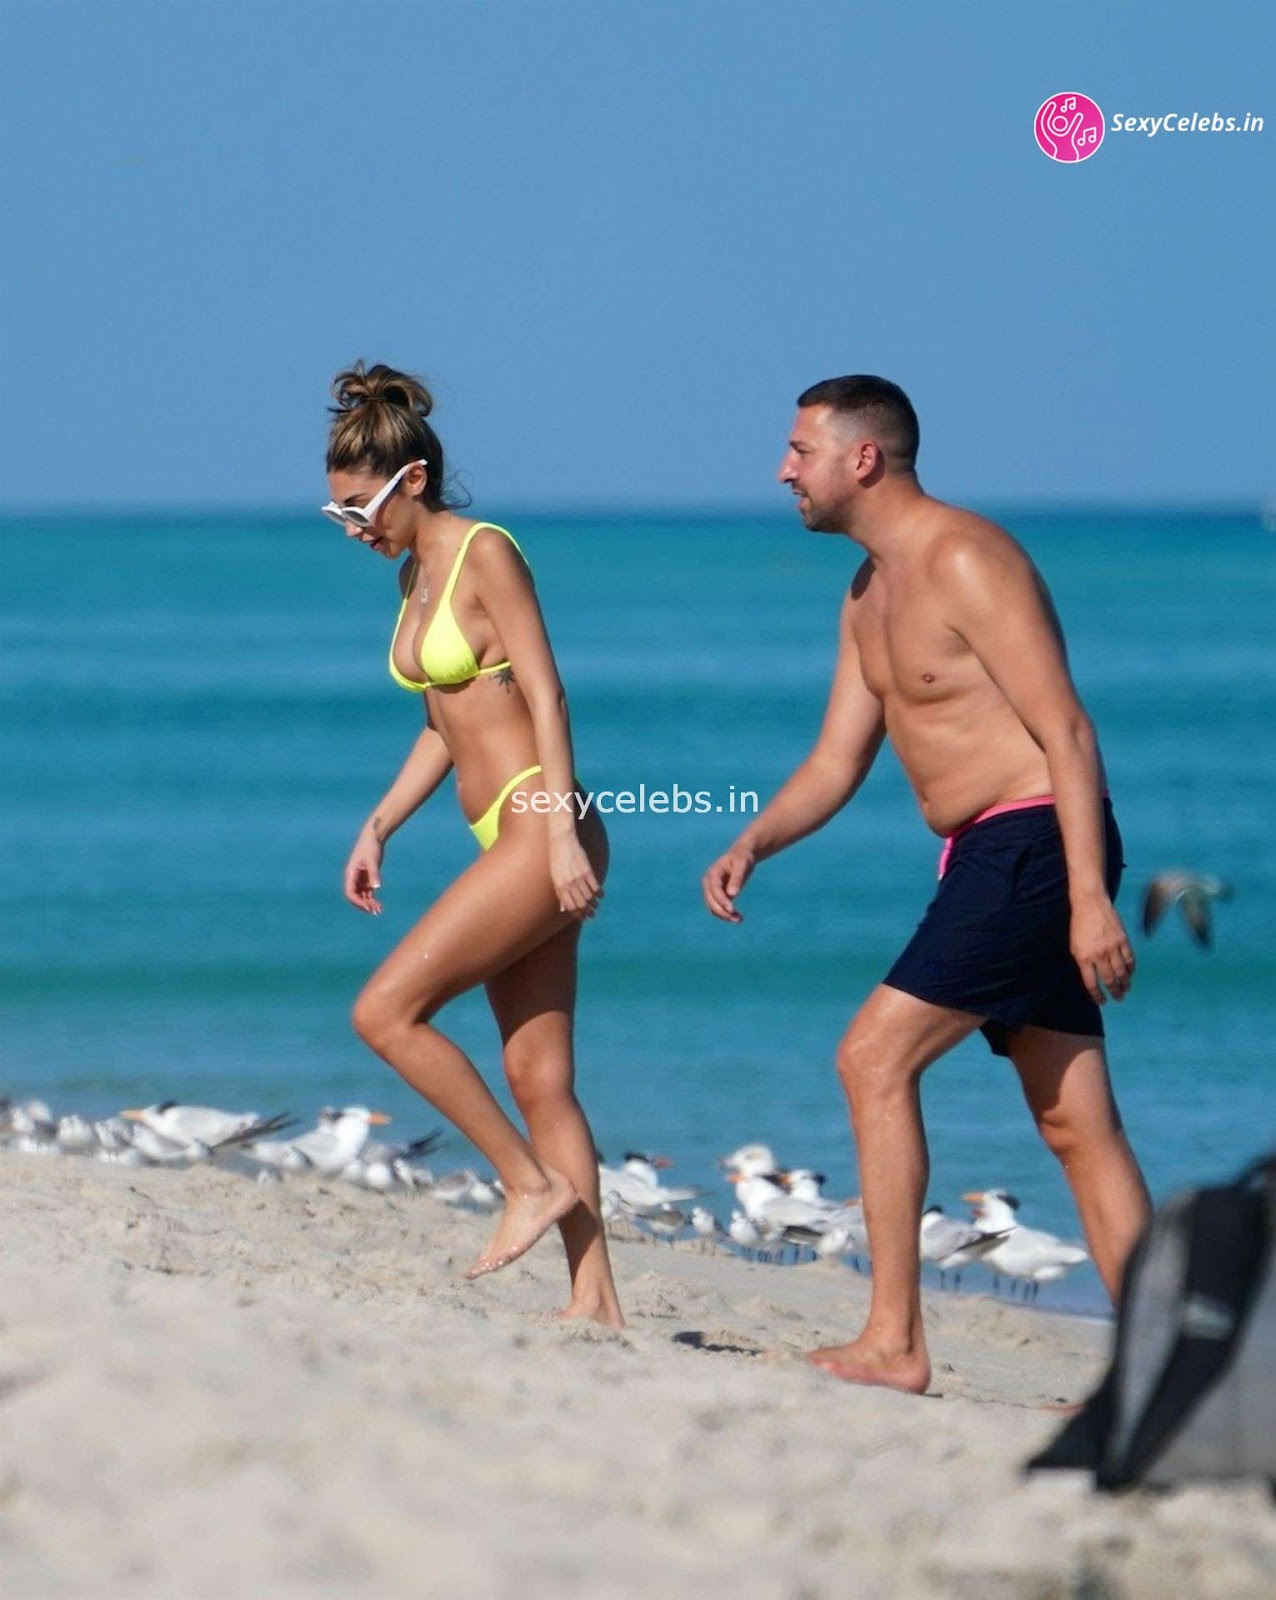 Chantel Jeffries Sexy body huge tits sexy ass in tiny yellow bikini WOW Beach Side Booty Pics